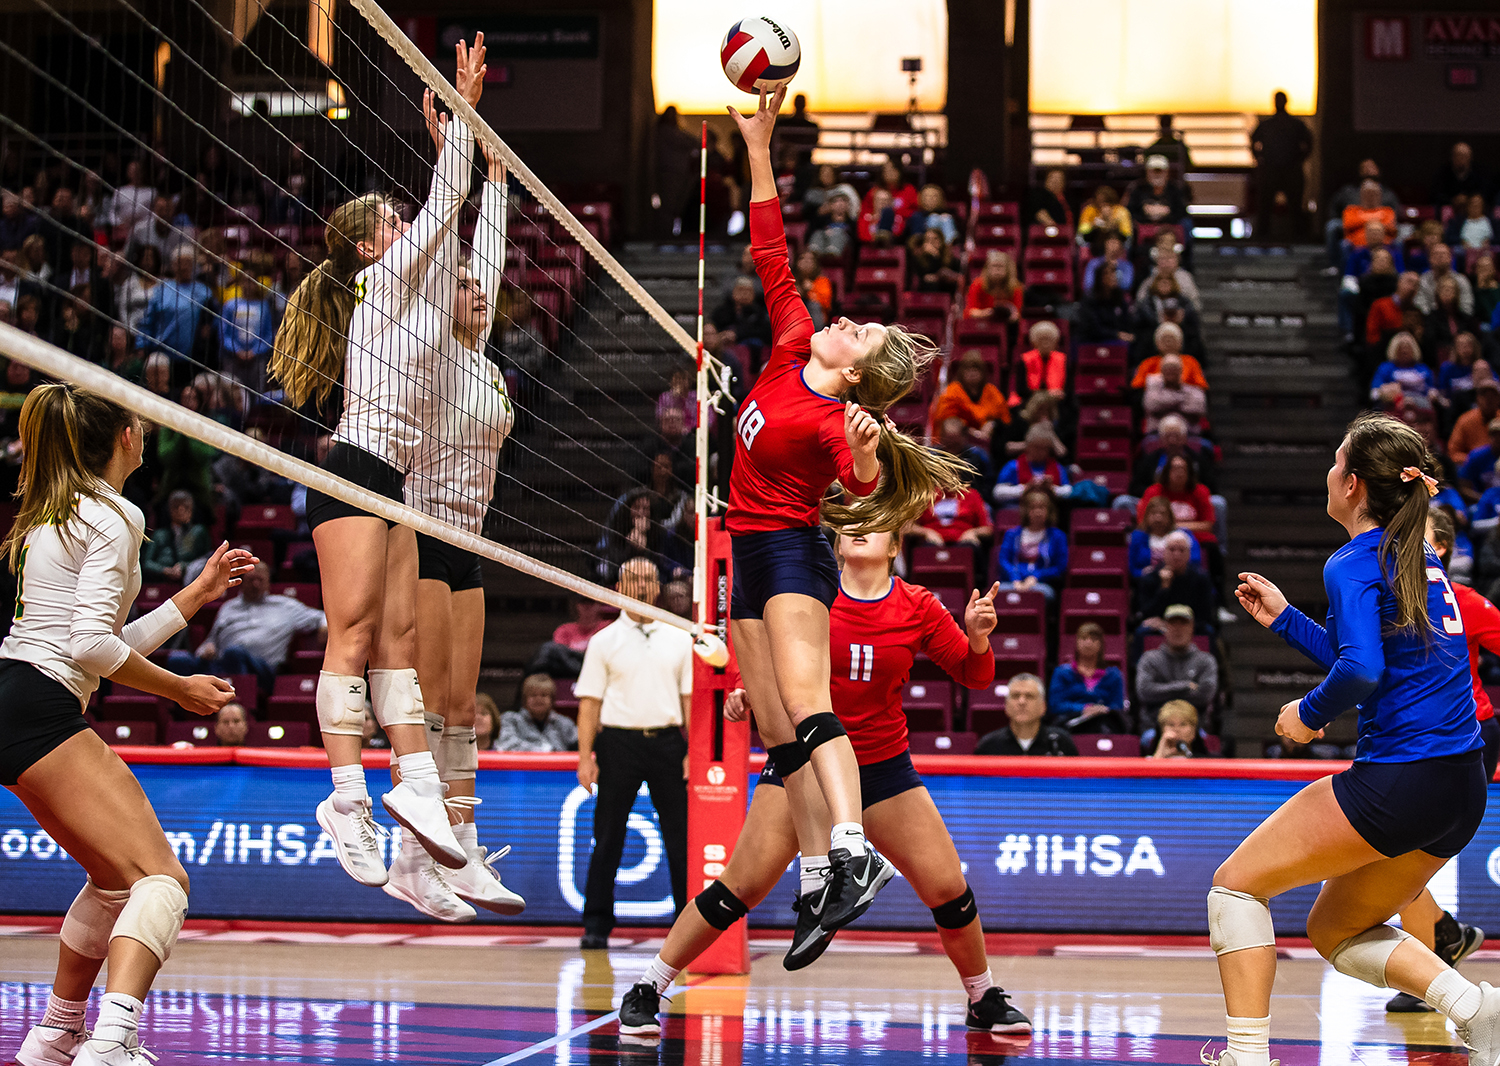 Pleasant Plains' Anna Kanllakan (18) puts the light touch on the attack to score a point for the Cardinals against Champaign St. Thomas More during the Class 2A IHSA Volleyball State Final Tournament semifinals at Redbird Arena, Friday, Nov. 9, 2018, in Normal, Ill. [Justin L. Fowler/The State Journal-Register]